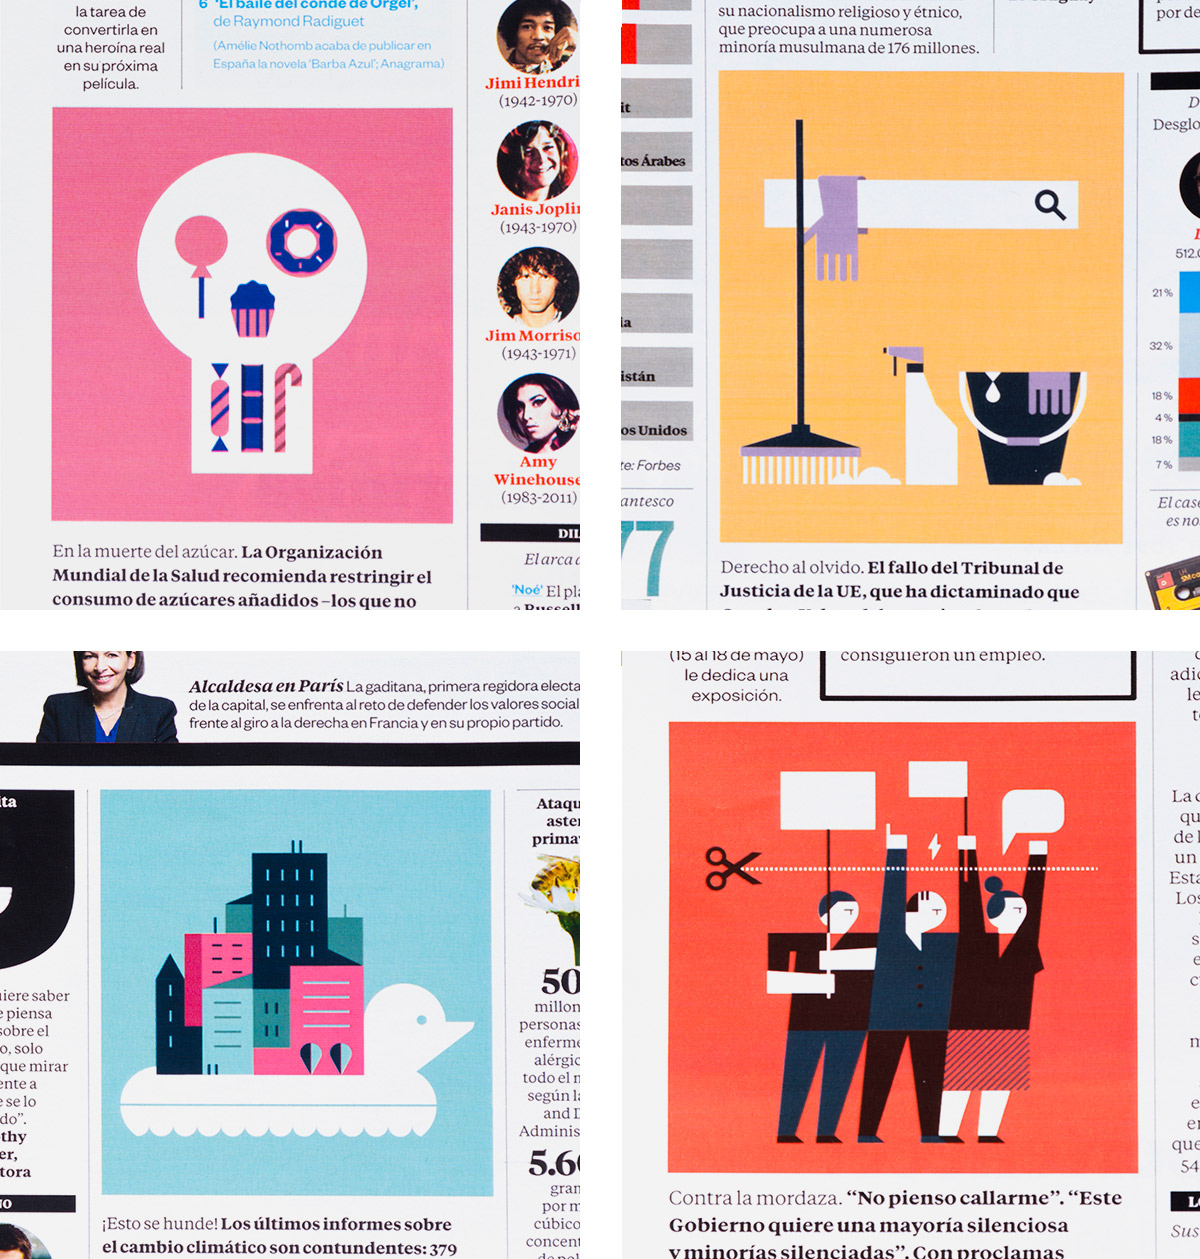 El Pais Semanal illustration